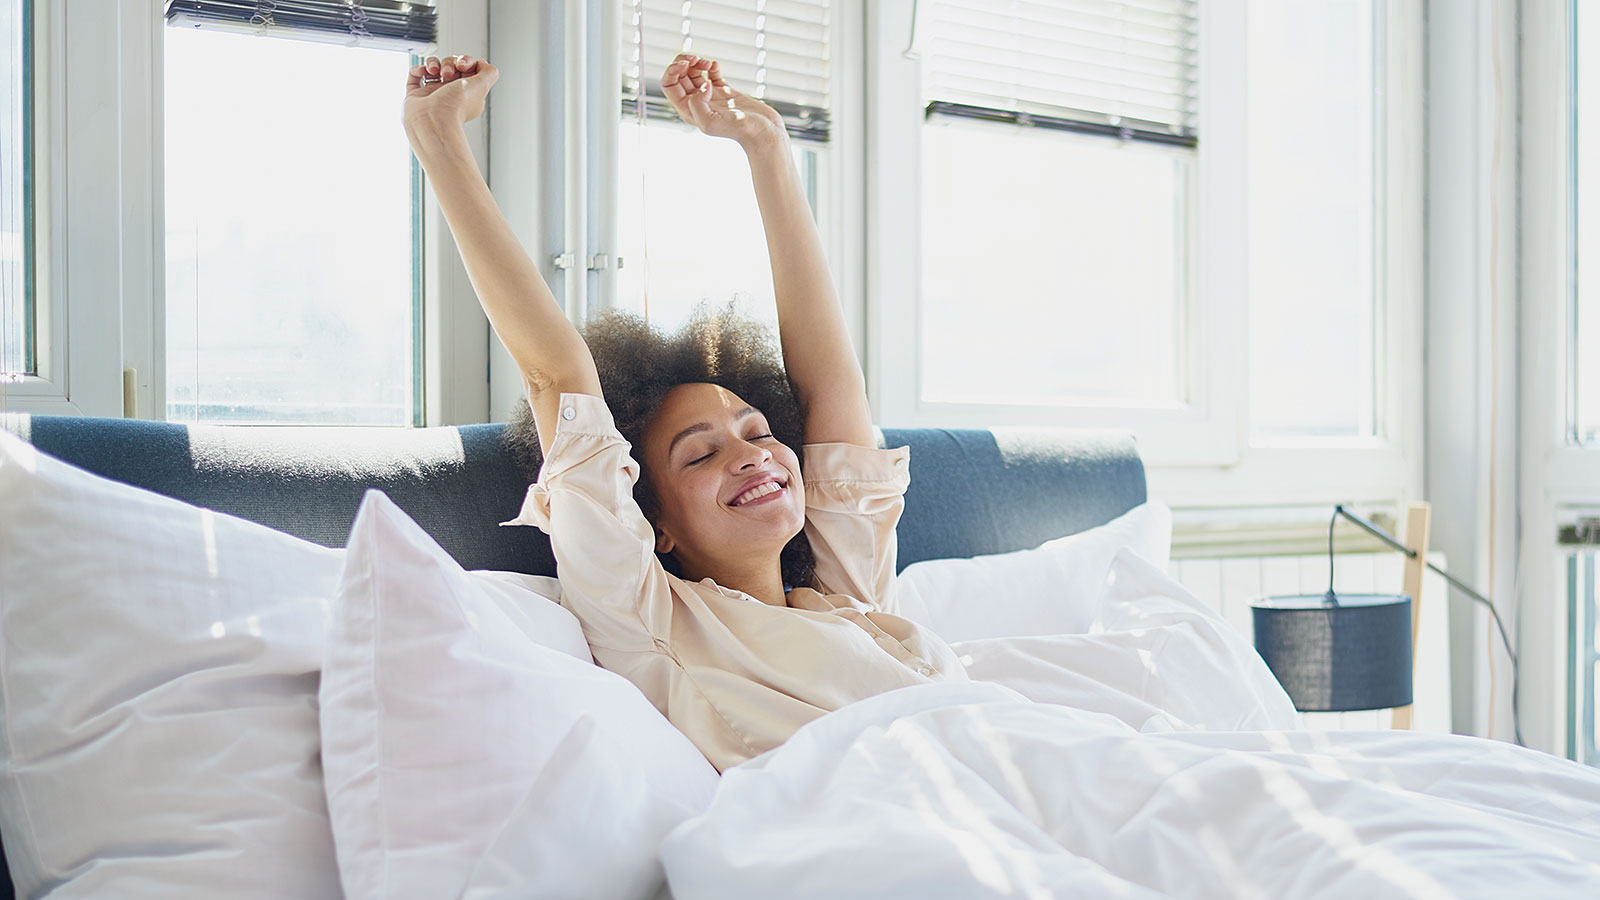 10 reasons you should wake up at 5 AM for 30 days straight